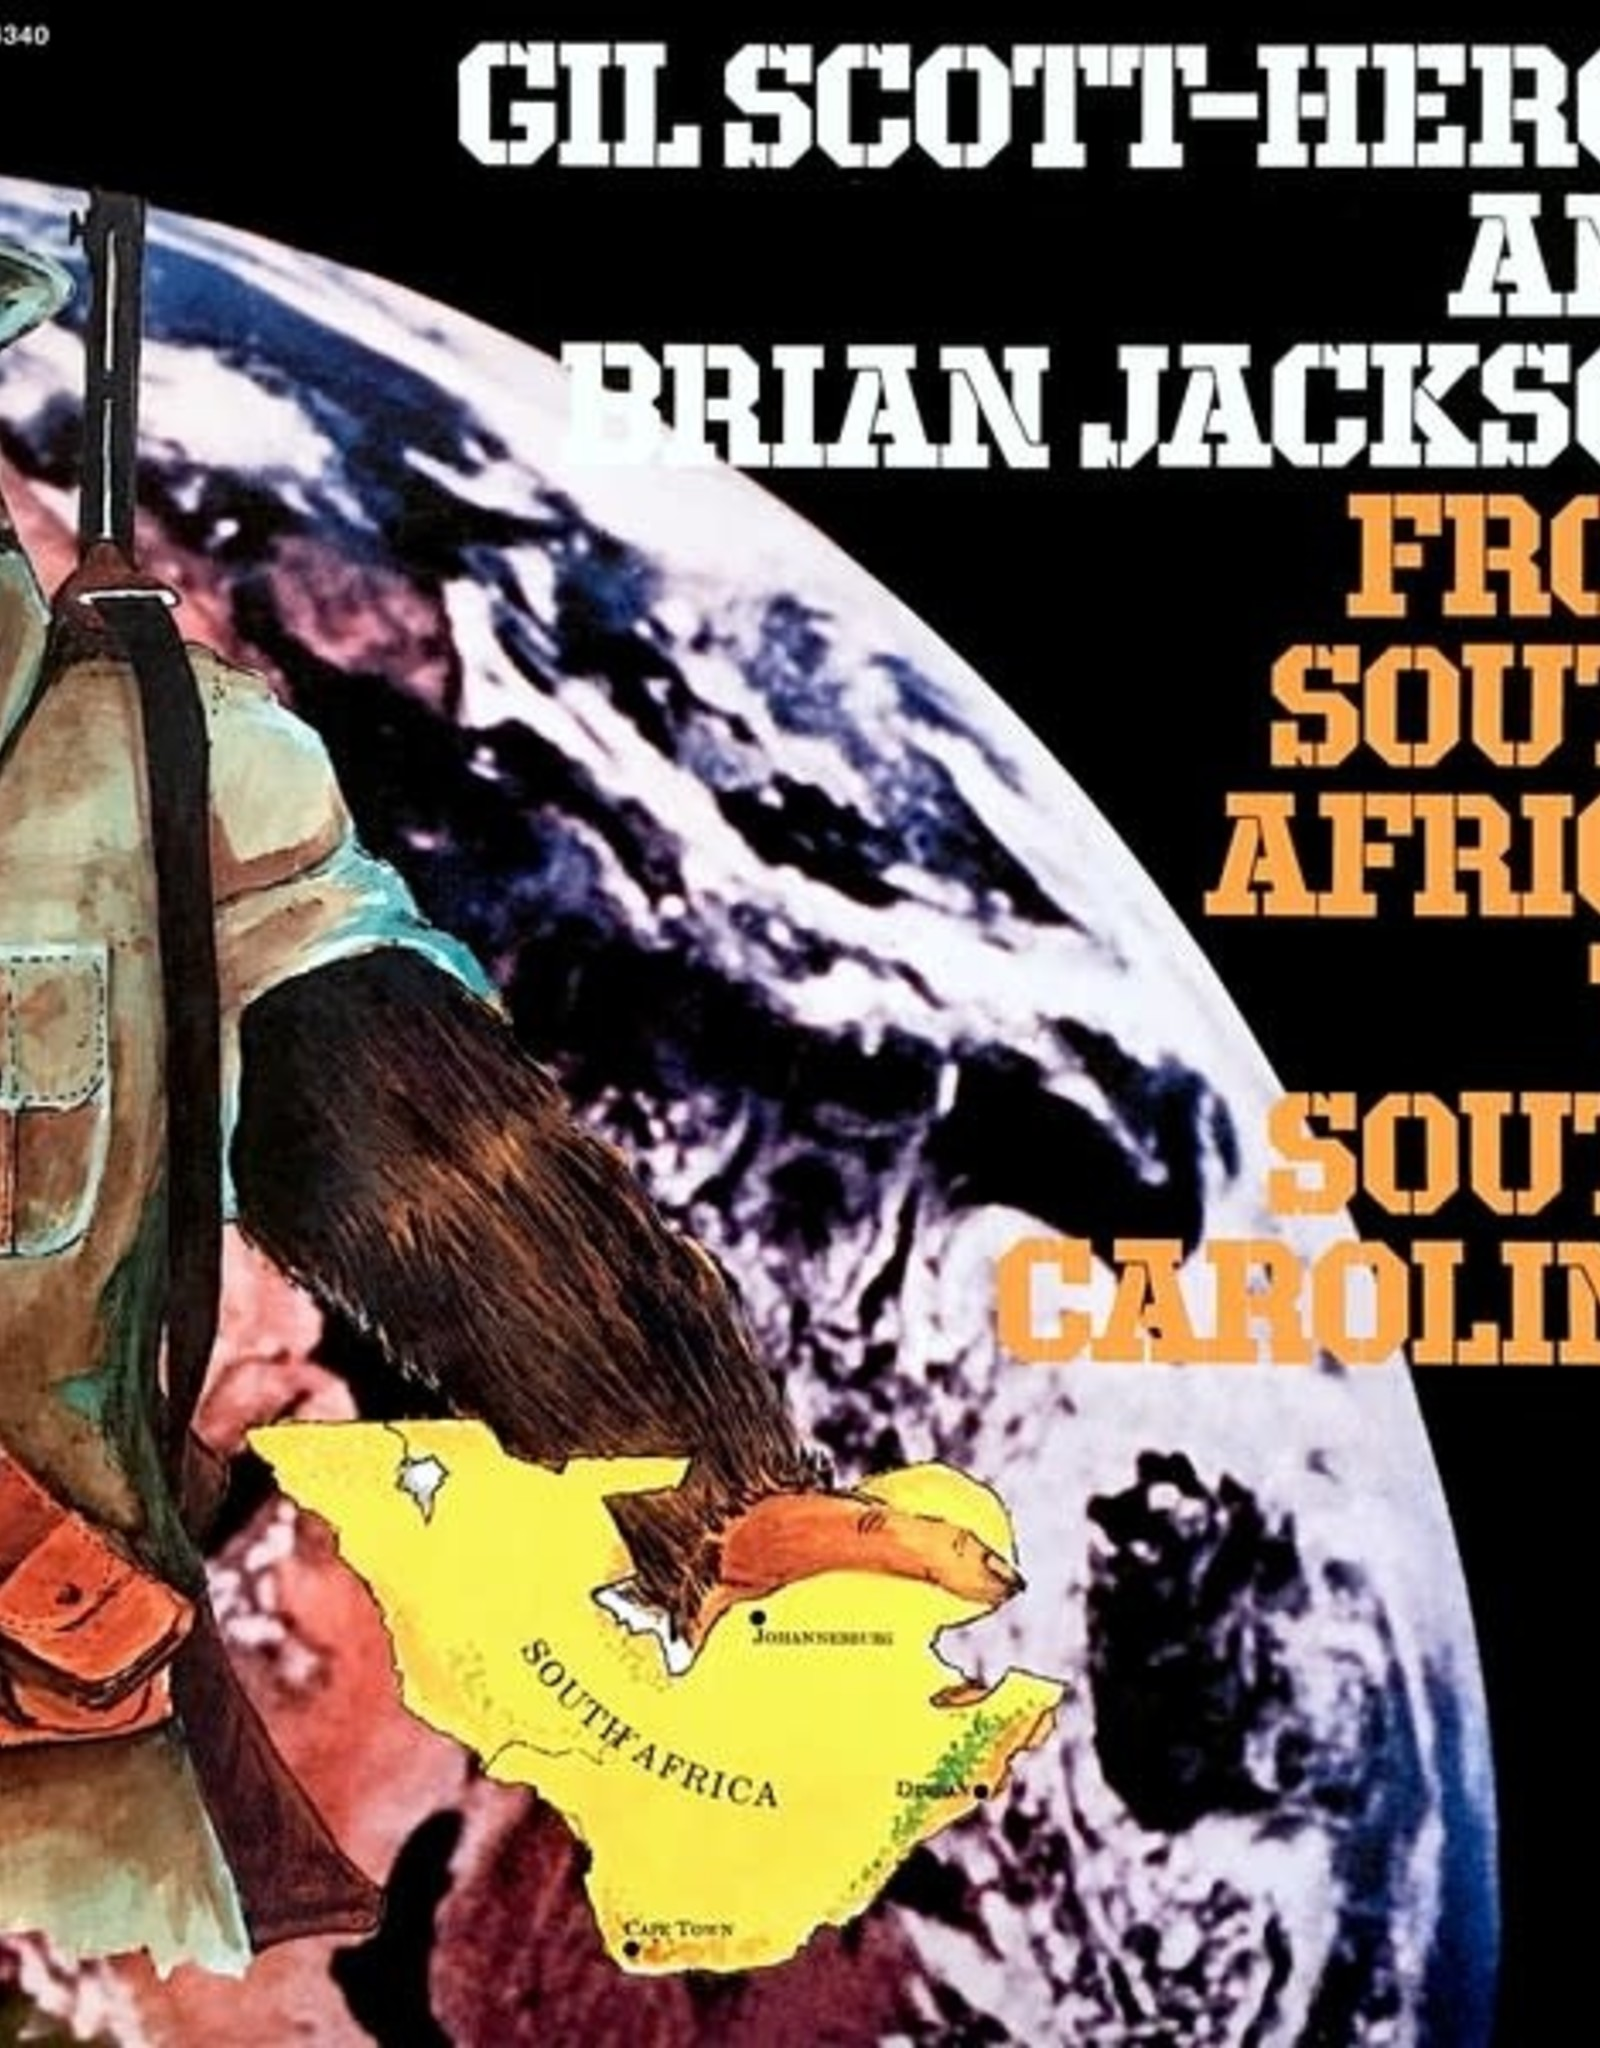 Gil Scott-Heron - From South Africa to South Carolina